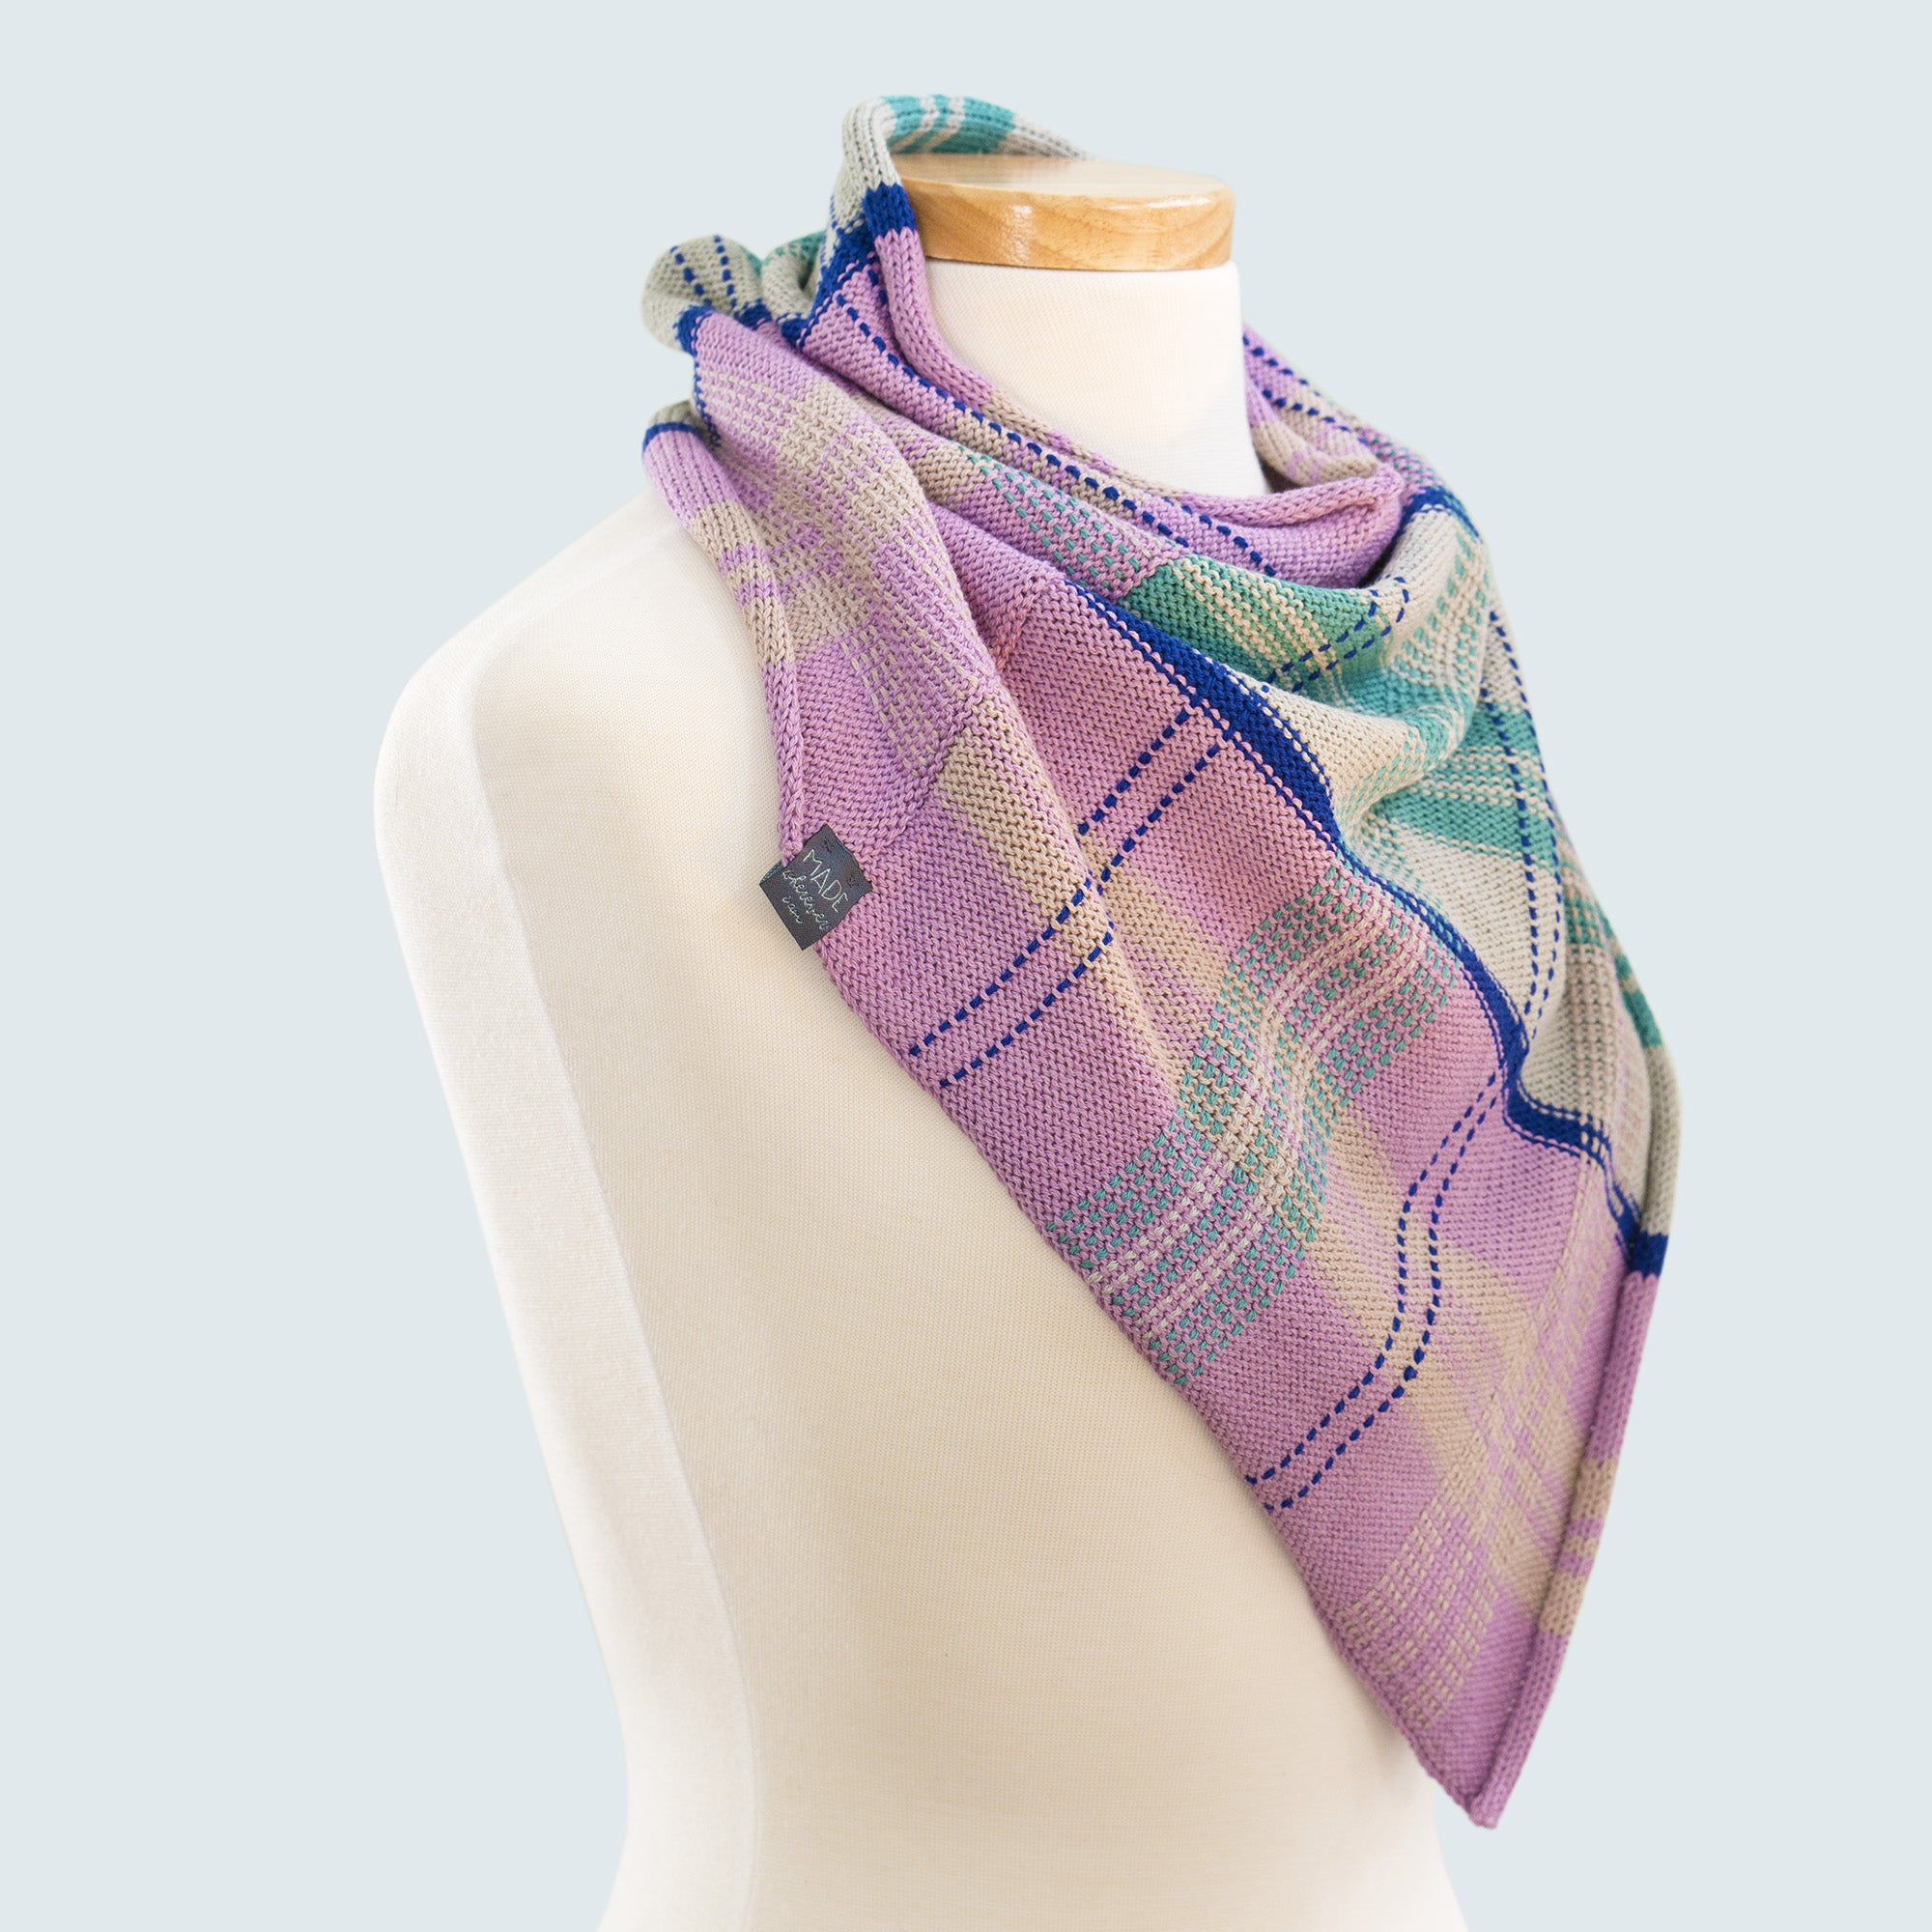 Side view of spring bandana cowl scarf in wool cotton blend with tartan design in purple, grey, blue and green